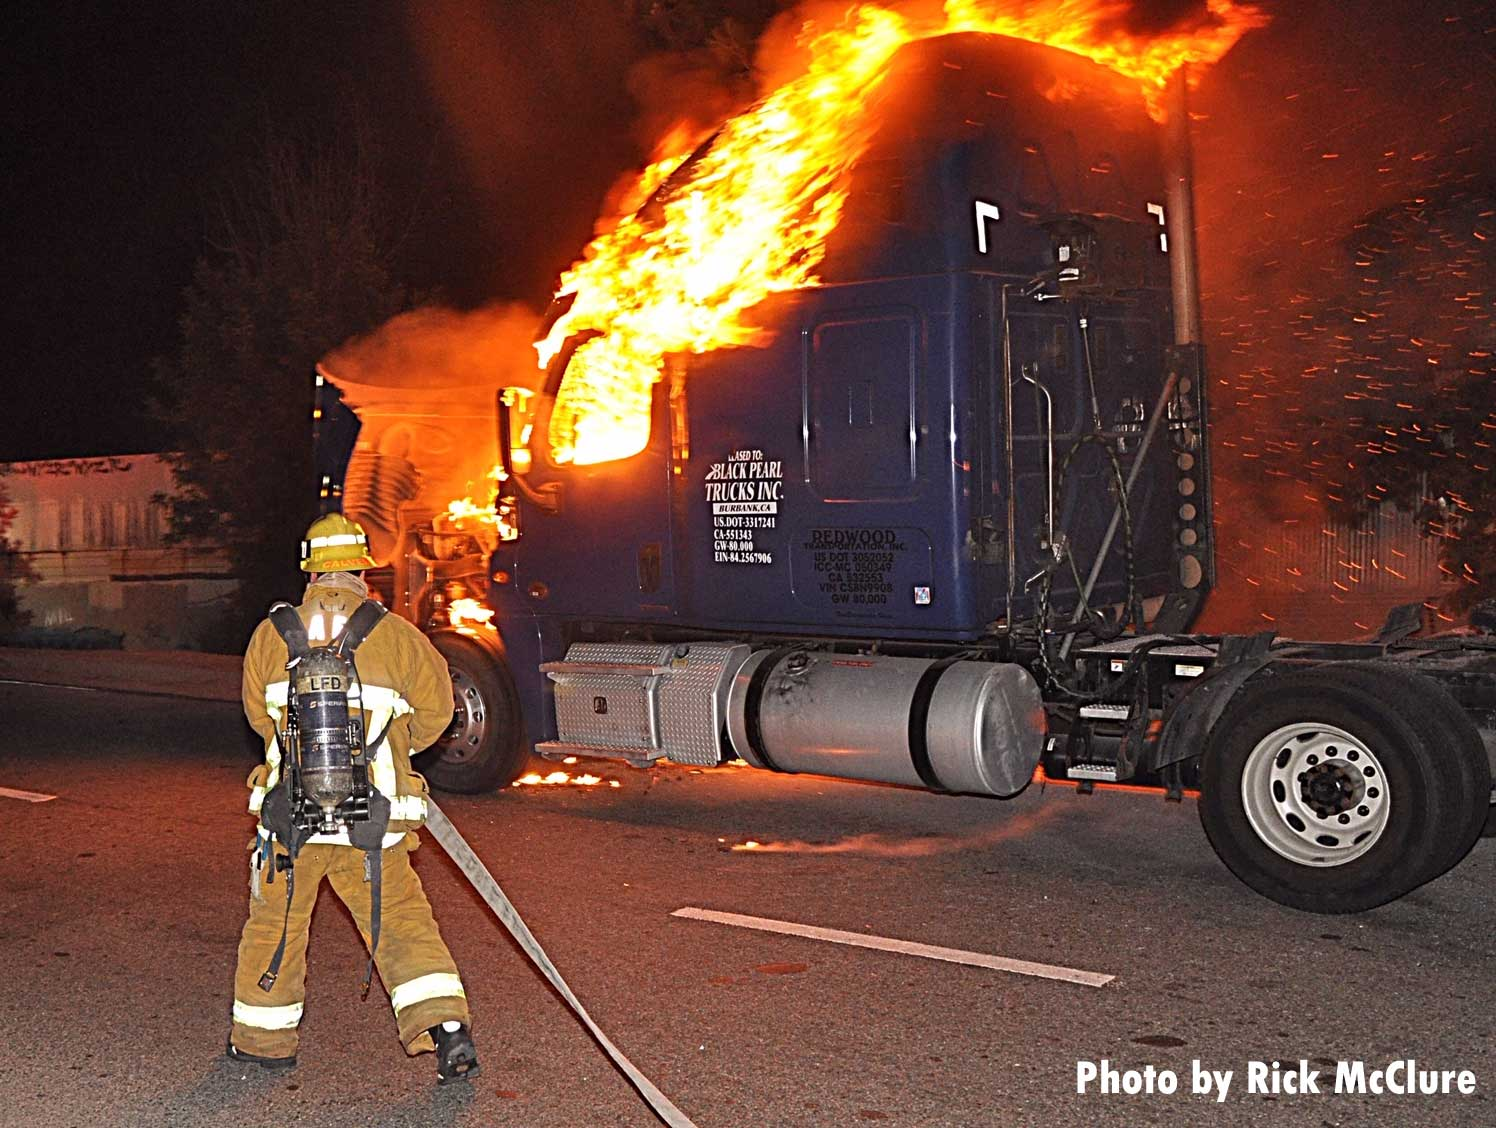 A Los Angeles firefighter with a hoseline at a burning big rig